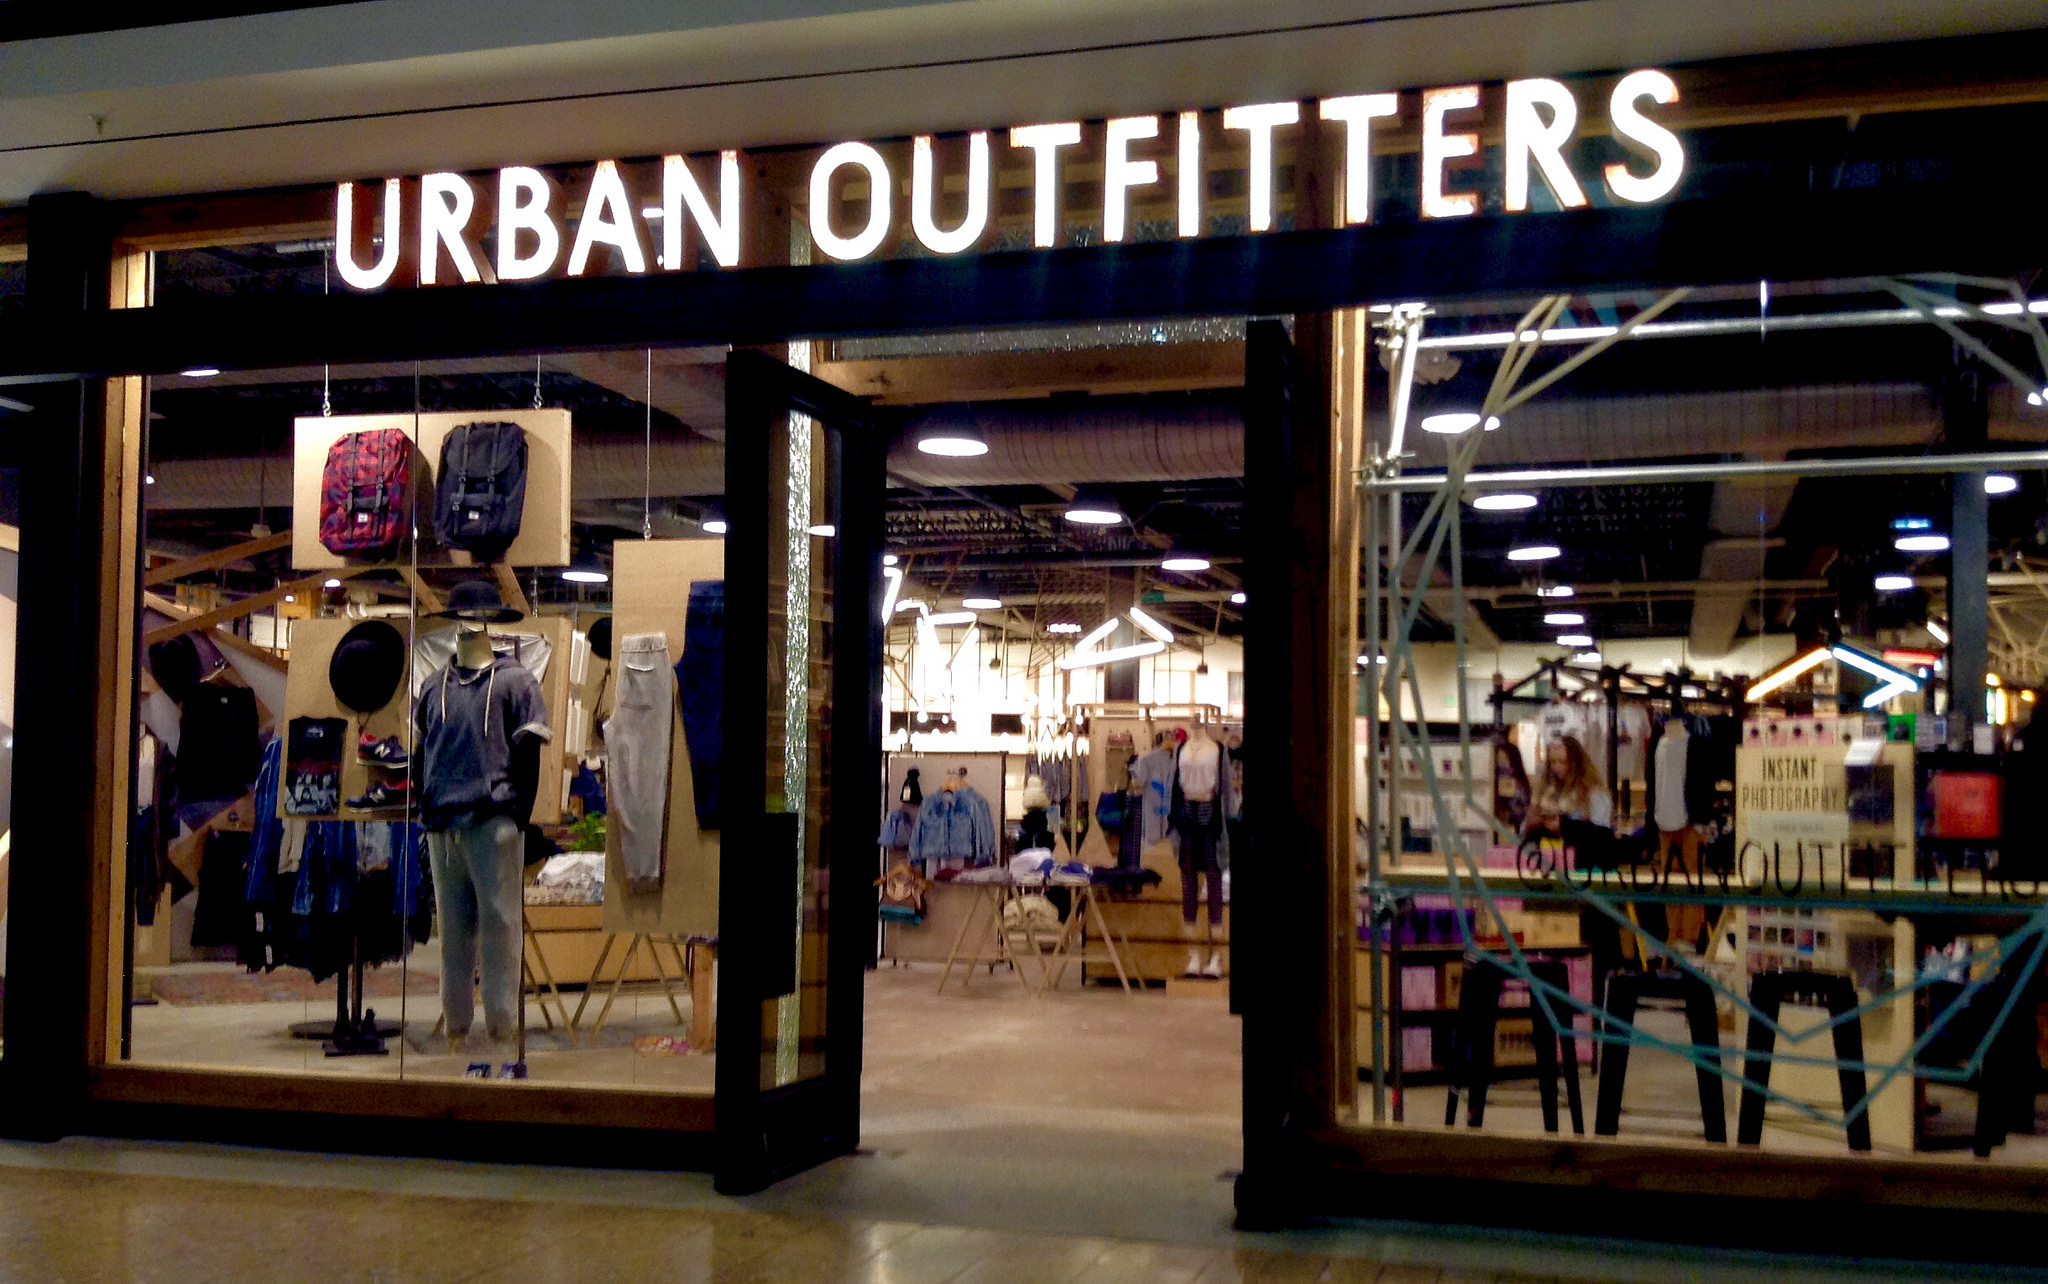 Urban outfitters clothing stores